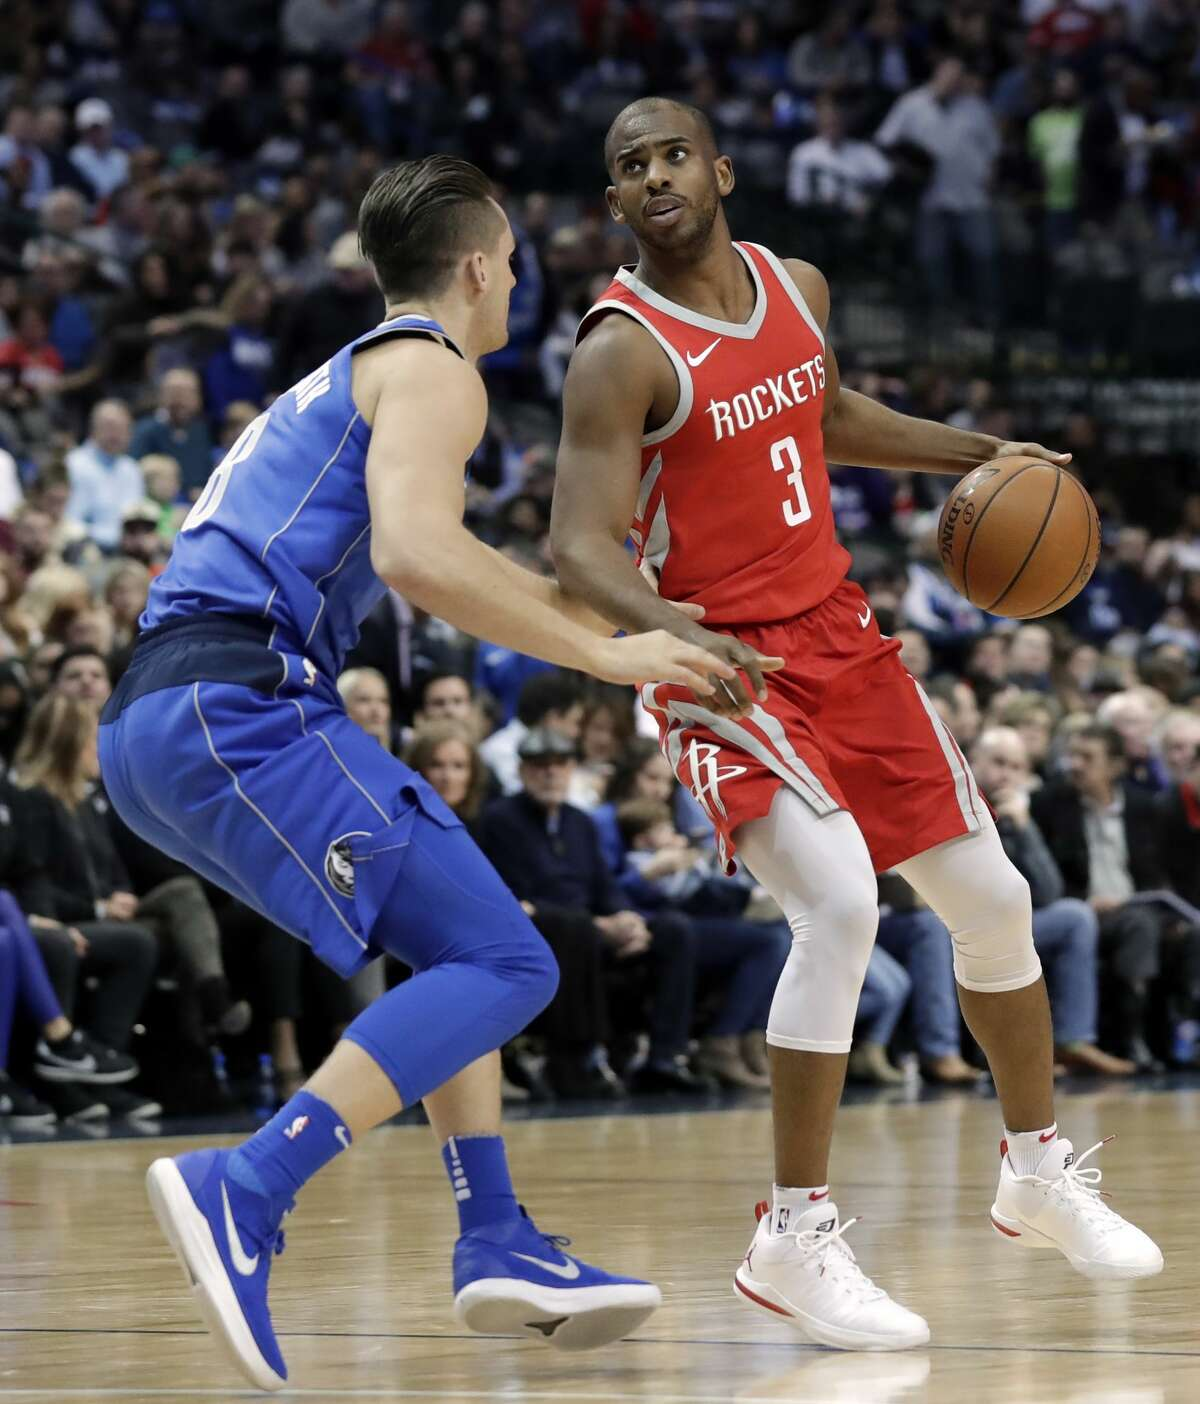 Dallas Mavericks guard Kyle Collinsworth (8) defends as Houston Rockets guard Chris Paul (3) handles the ball in the first half of an NBA basketball game Wednesday, Jan. 24, 2018, in Dallas. (AP Photo/Tony Gutierrez)